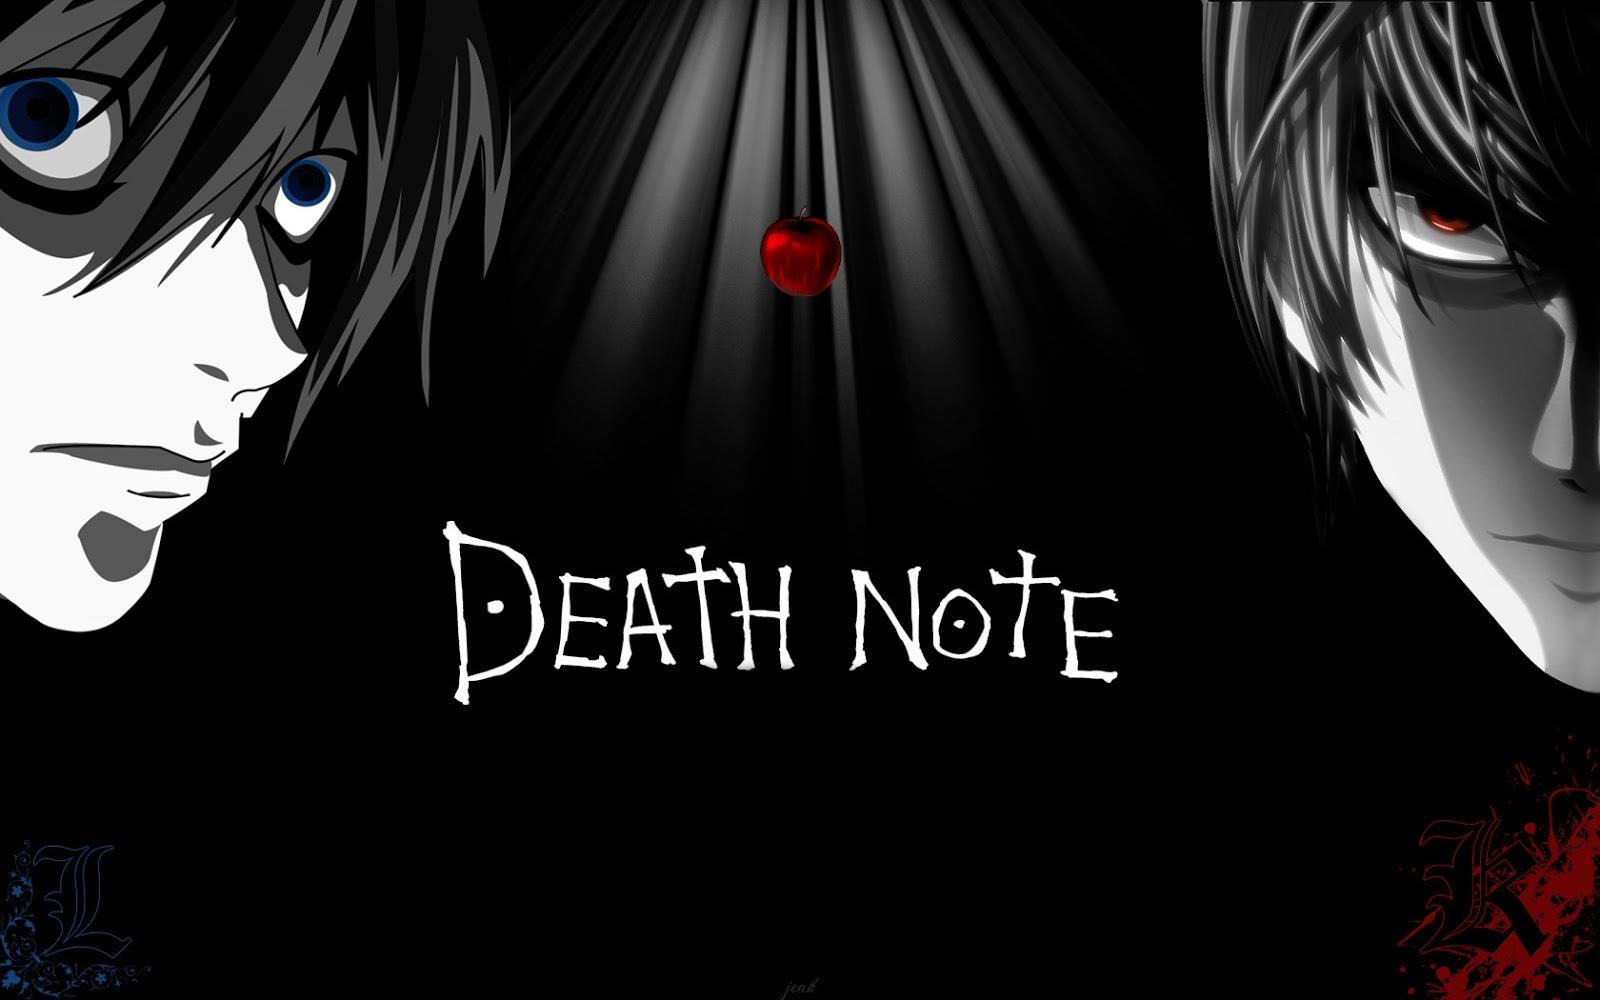 Death Note Libro Animes Recomendados Death Note